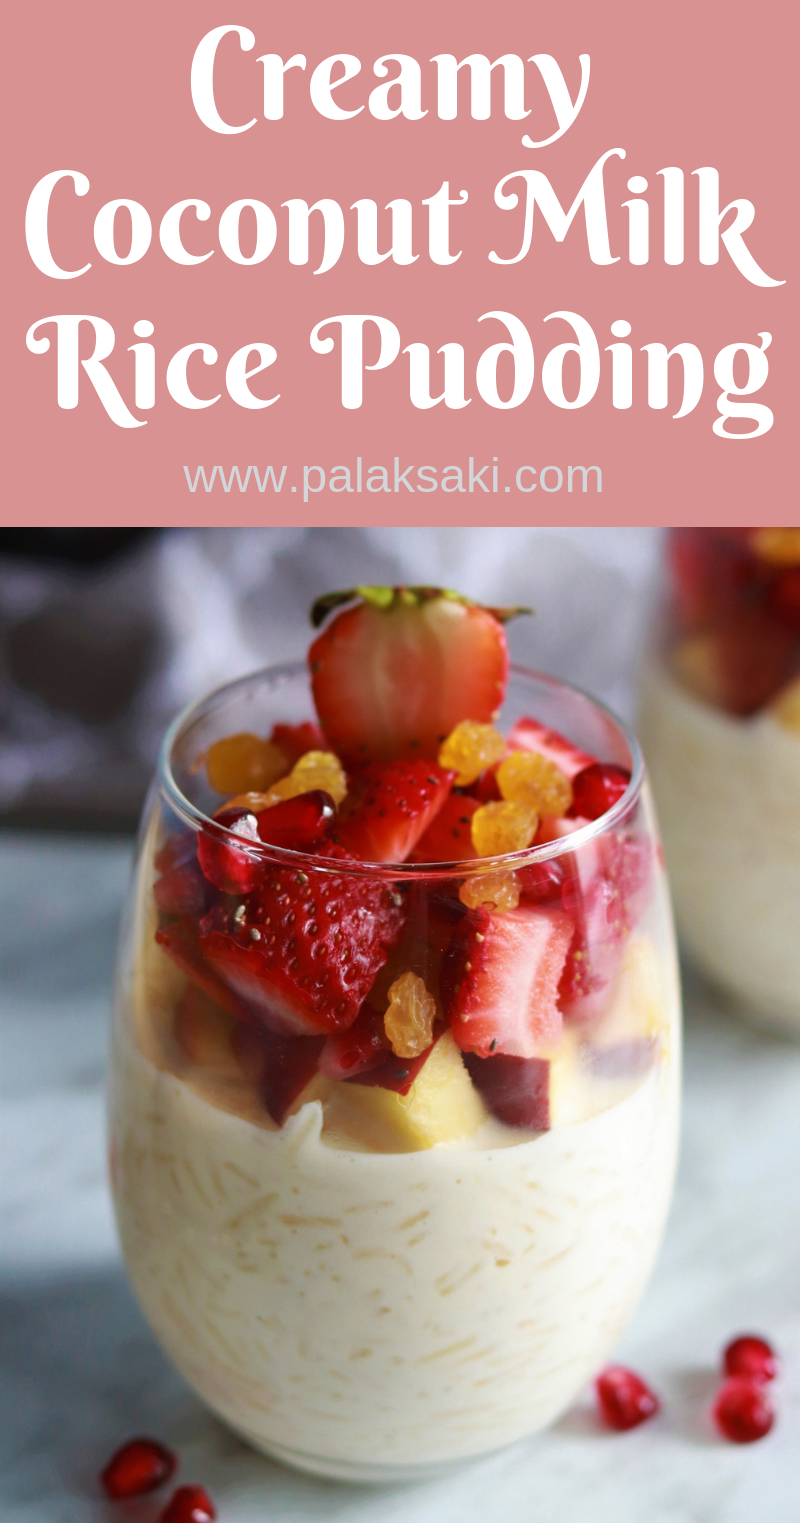 Creamy Coconut Milk Rice Pudding | Recipe | Coconut milk ...